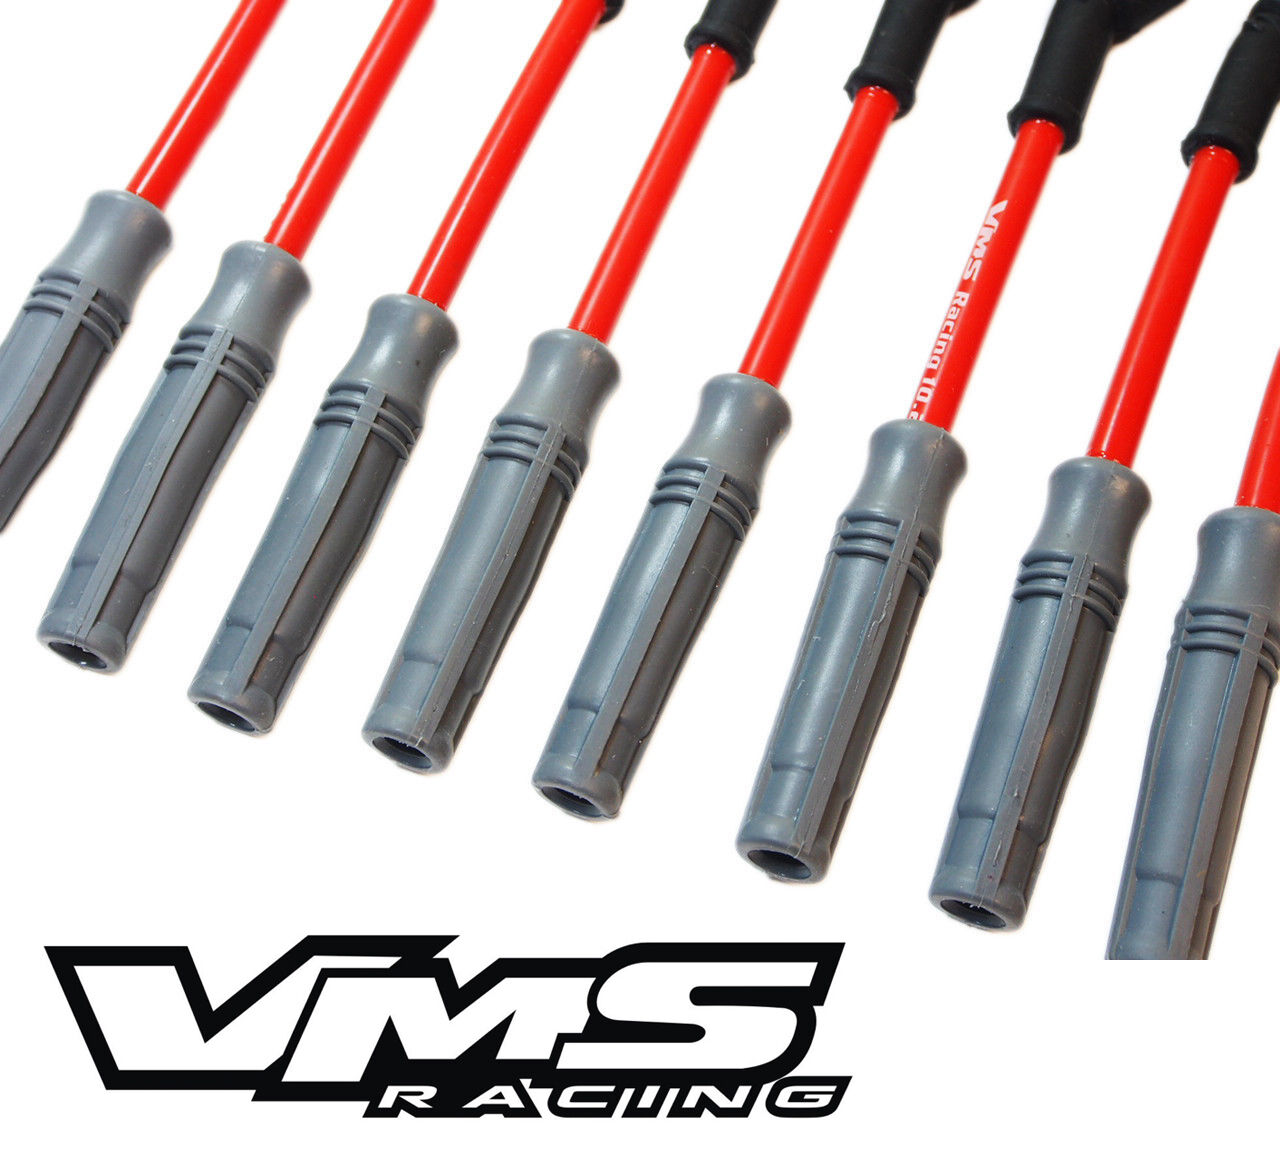 VMS RACING 10.2MM SPARK PLUG WIRE SET CAMARO CORVETTE LS1 LS2 LS3 LS6 LS7 LS9